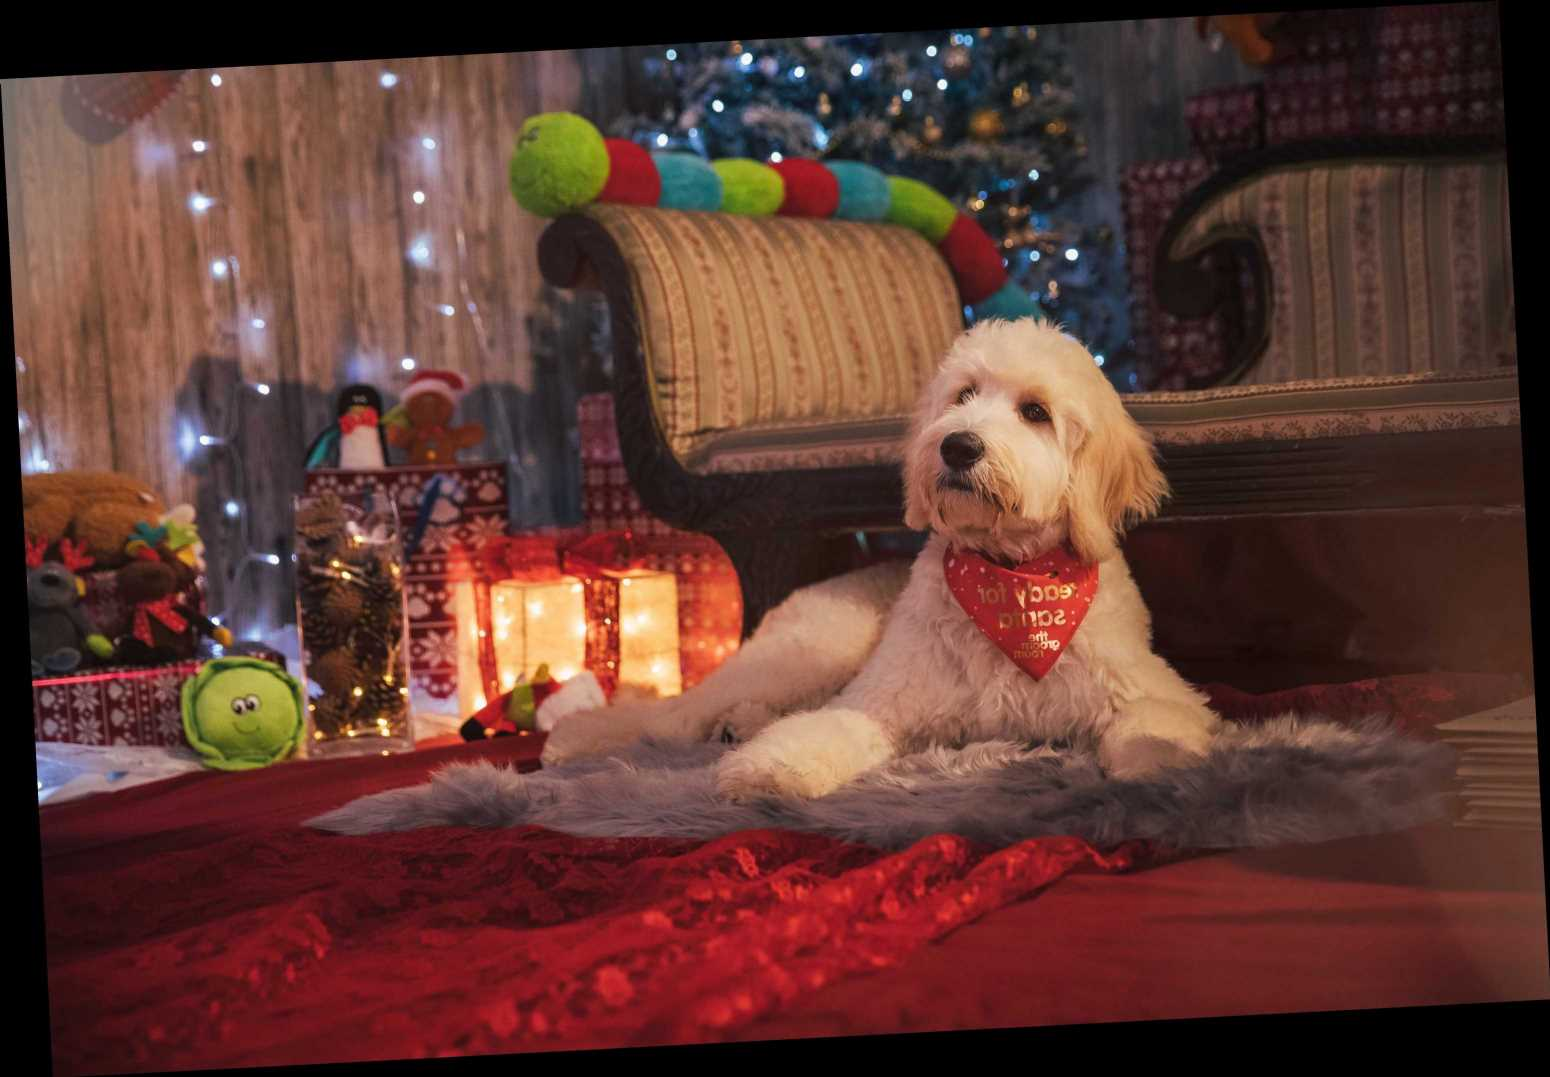 Pets at Home is offering dog spa treatments so your pooch can smell of gingerbread for Christmas – The Sun